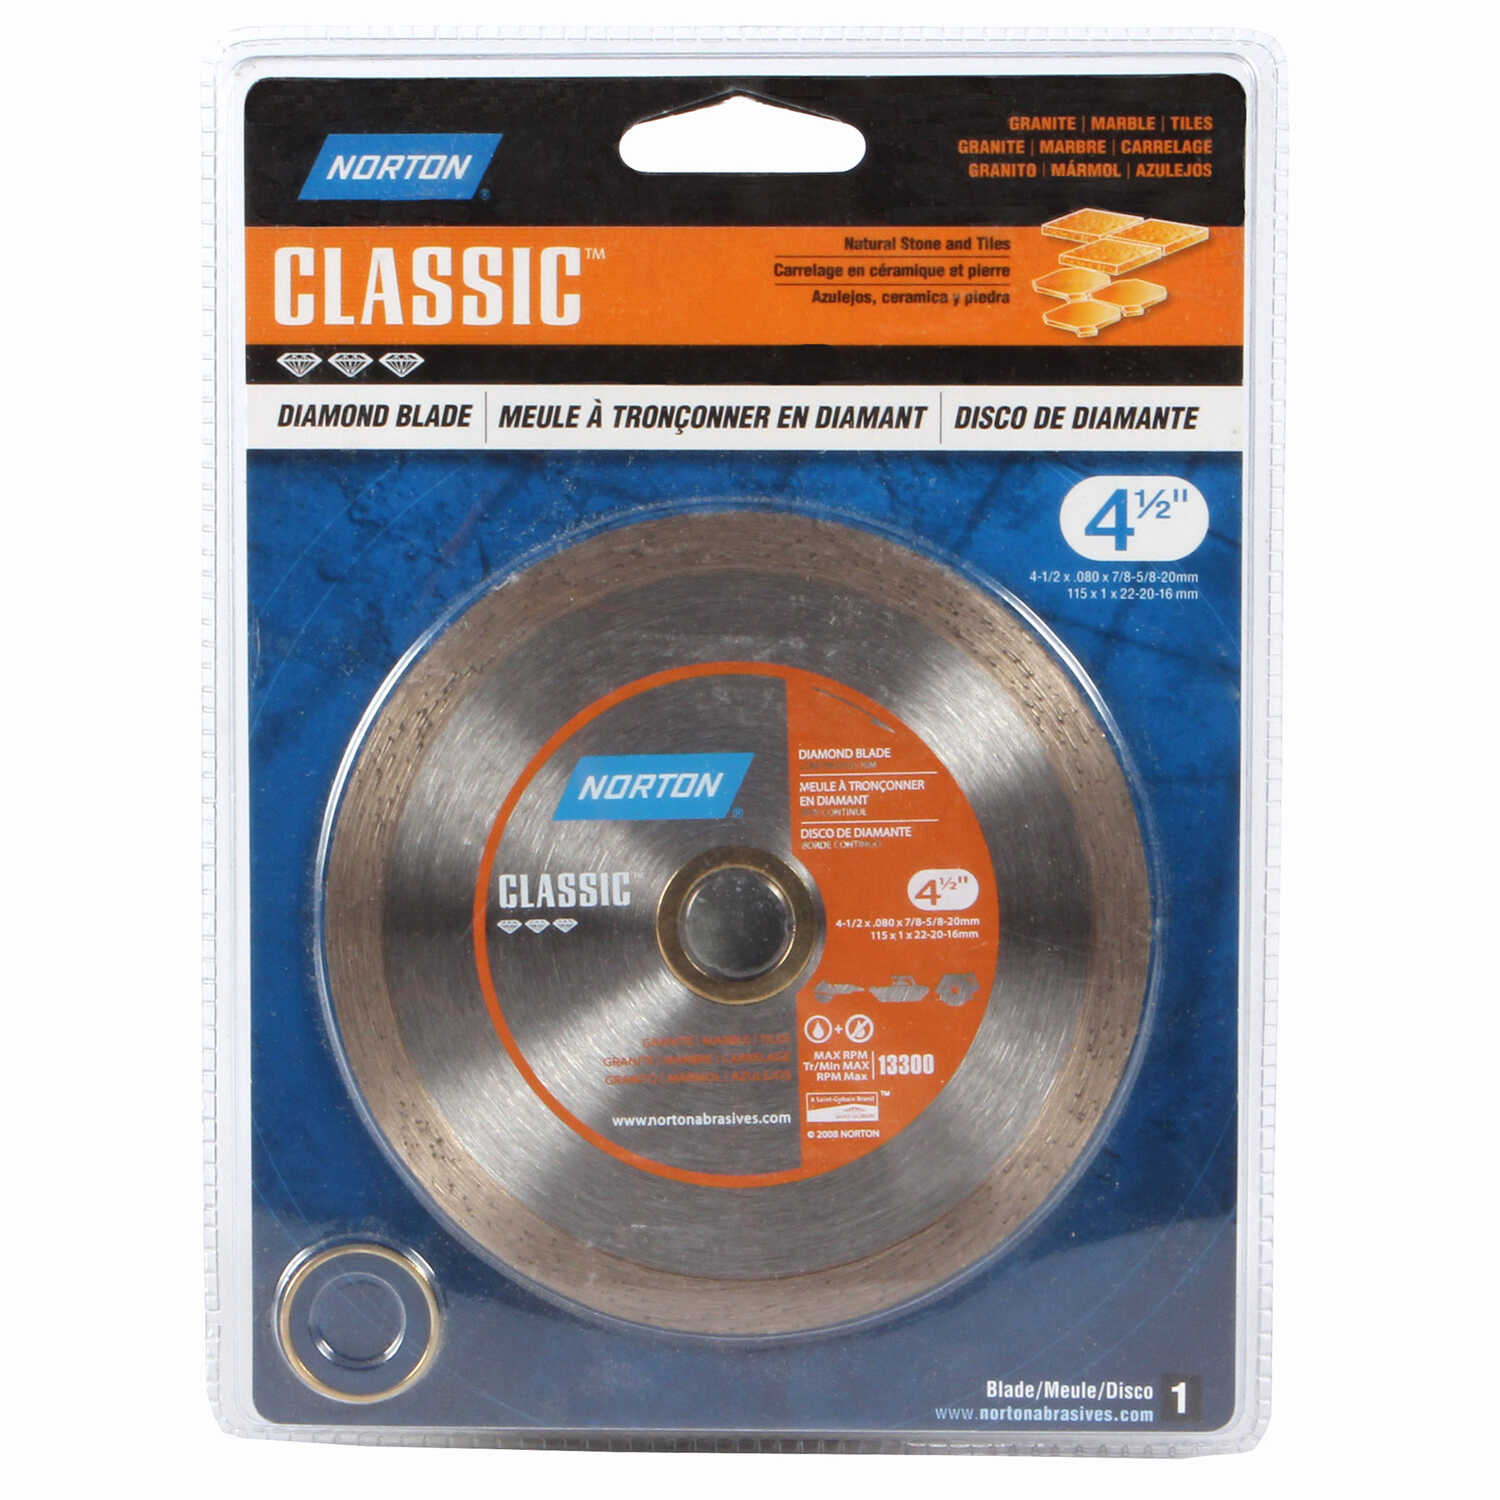 Norton  4-1/2  Dia. x 5/8 and 7/8   Classic  Continuous Rim Diamond Saw Blade  Diamond  1 pc.